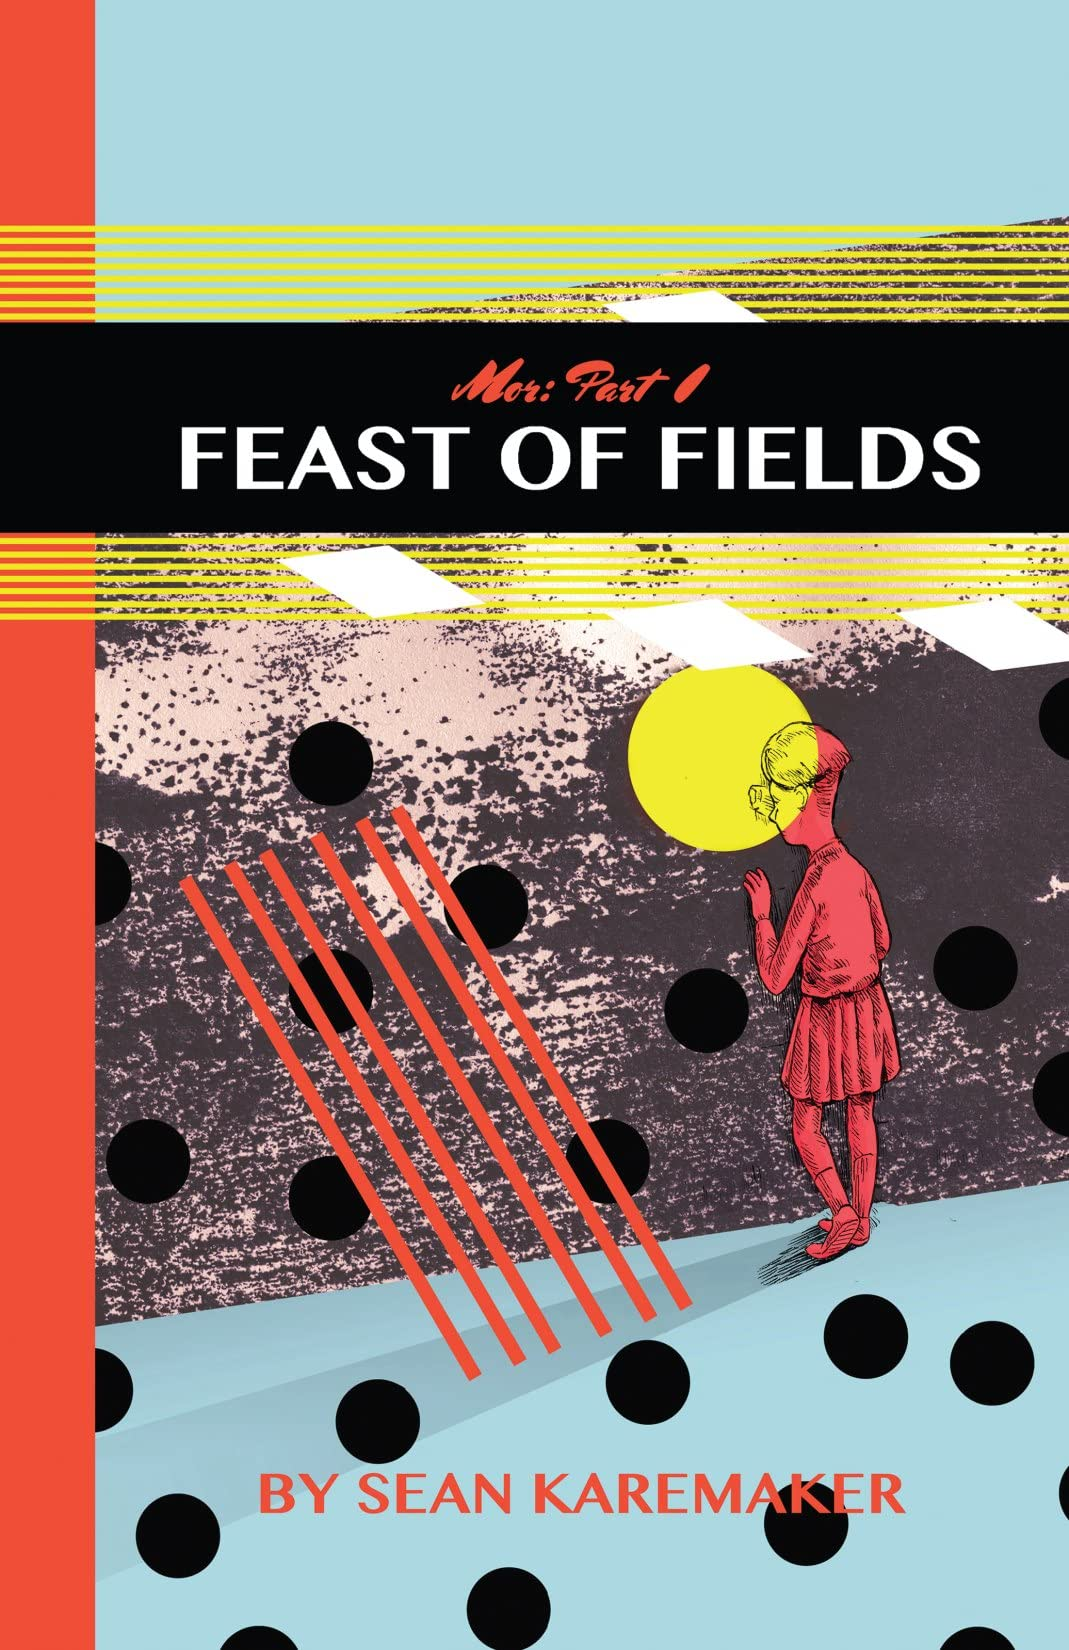 Feast of Fields Vol. 1